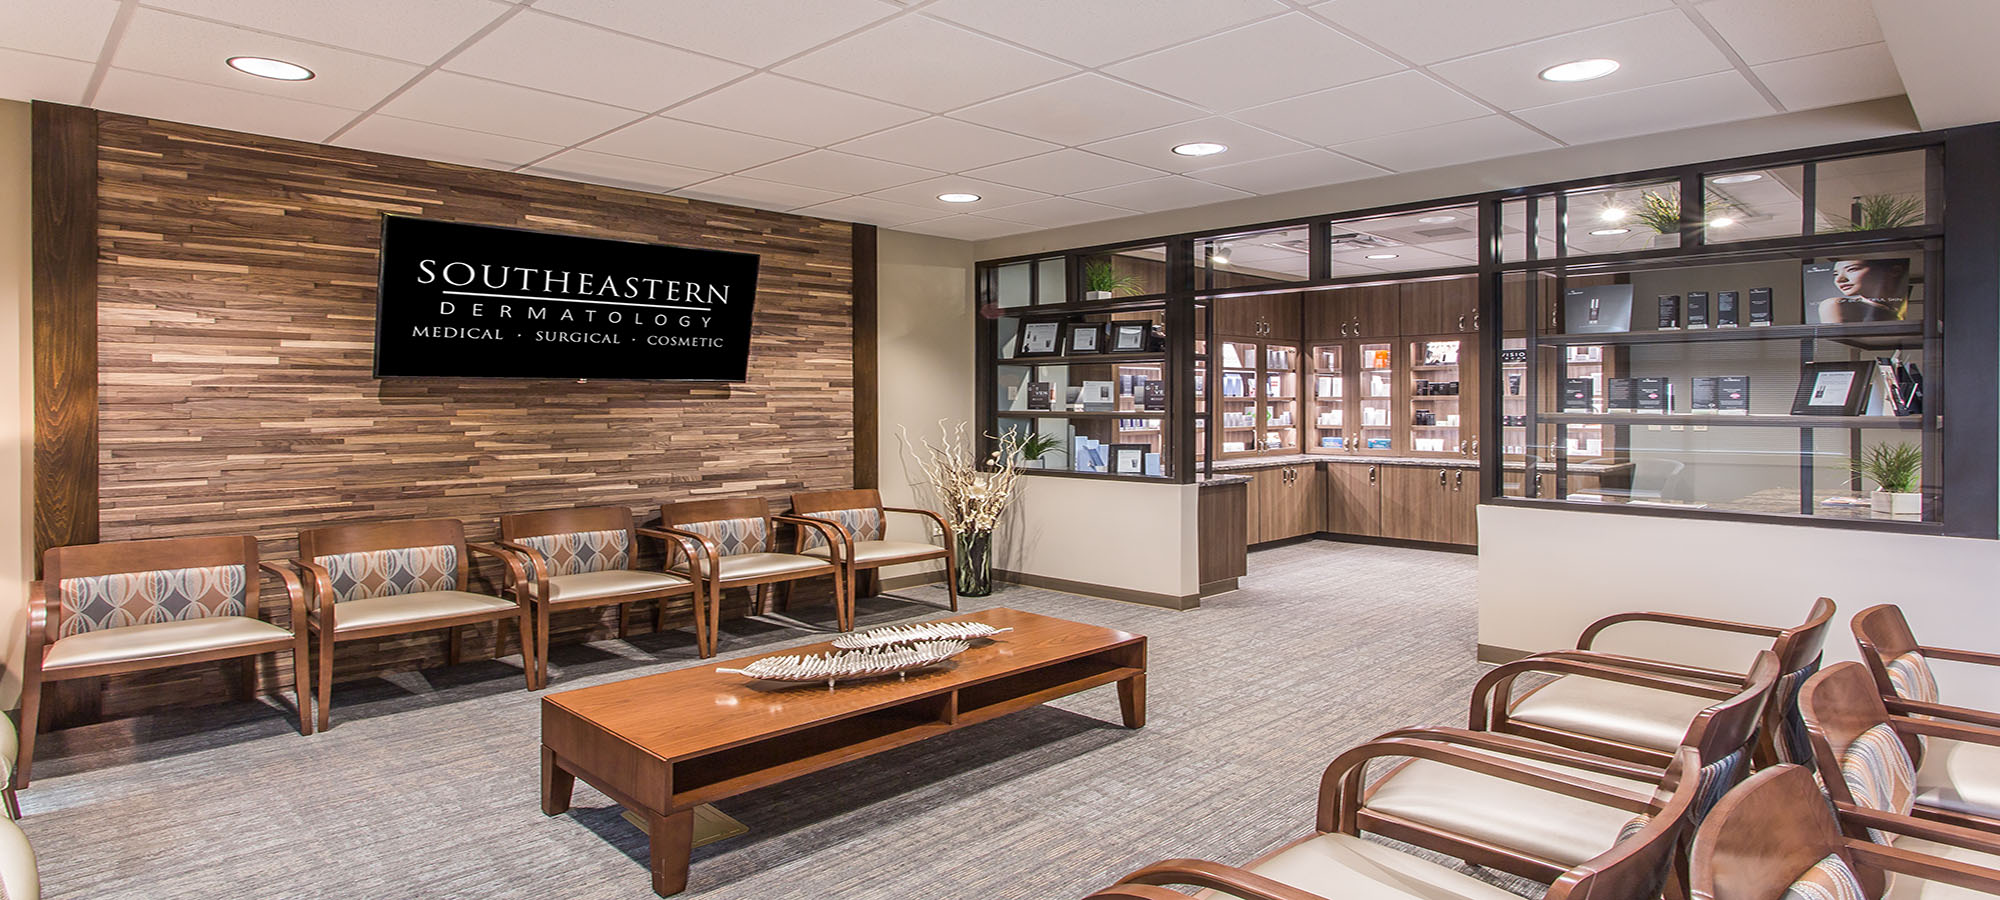 Picture of waiting room at Southeastern Dermatology